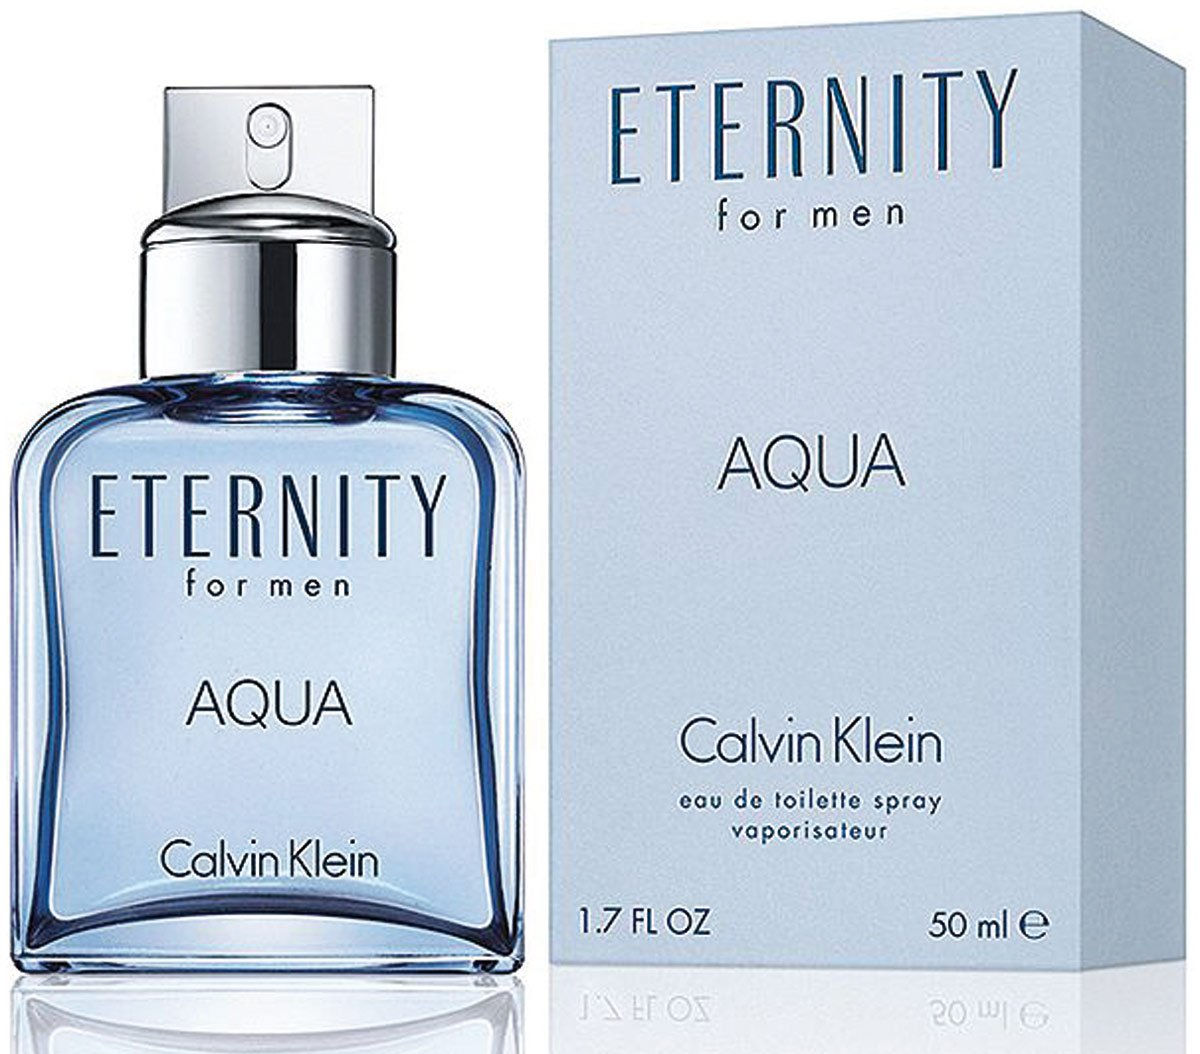 Calvin Klein Eternity for Men Aqua 50ml